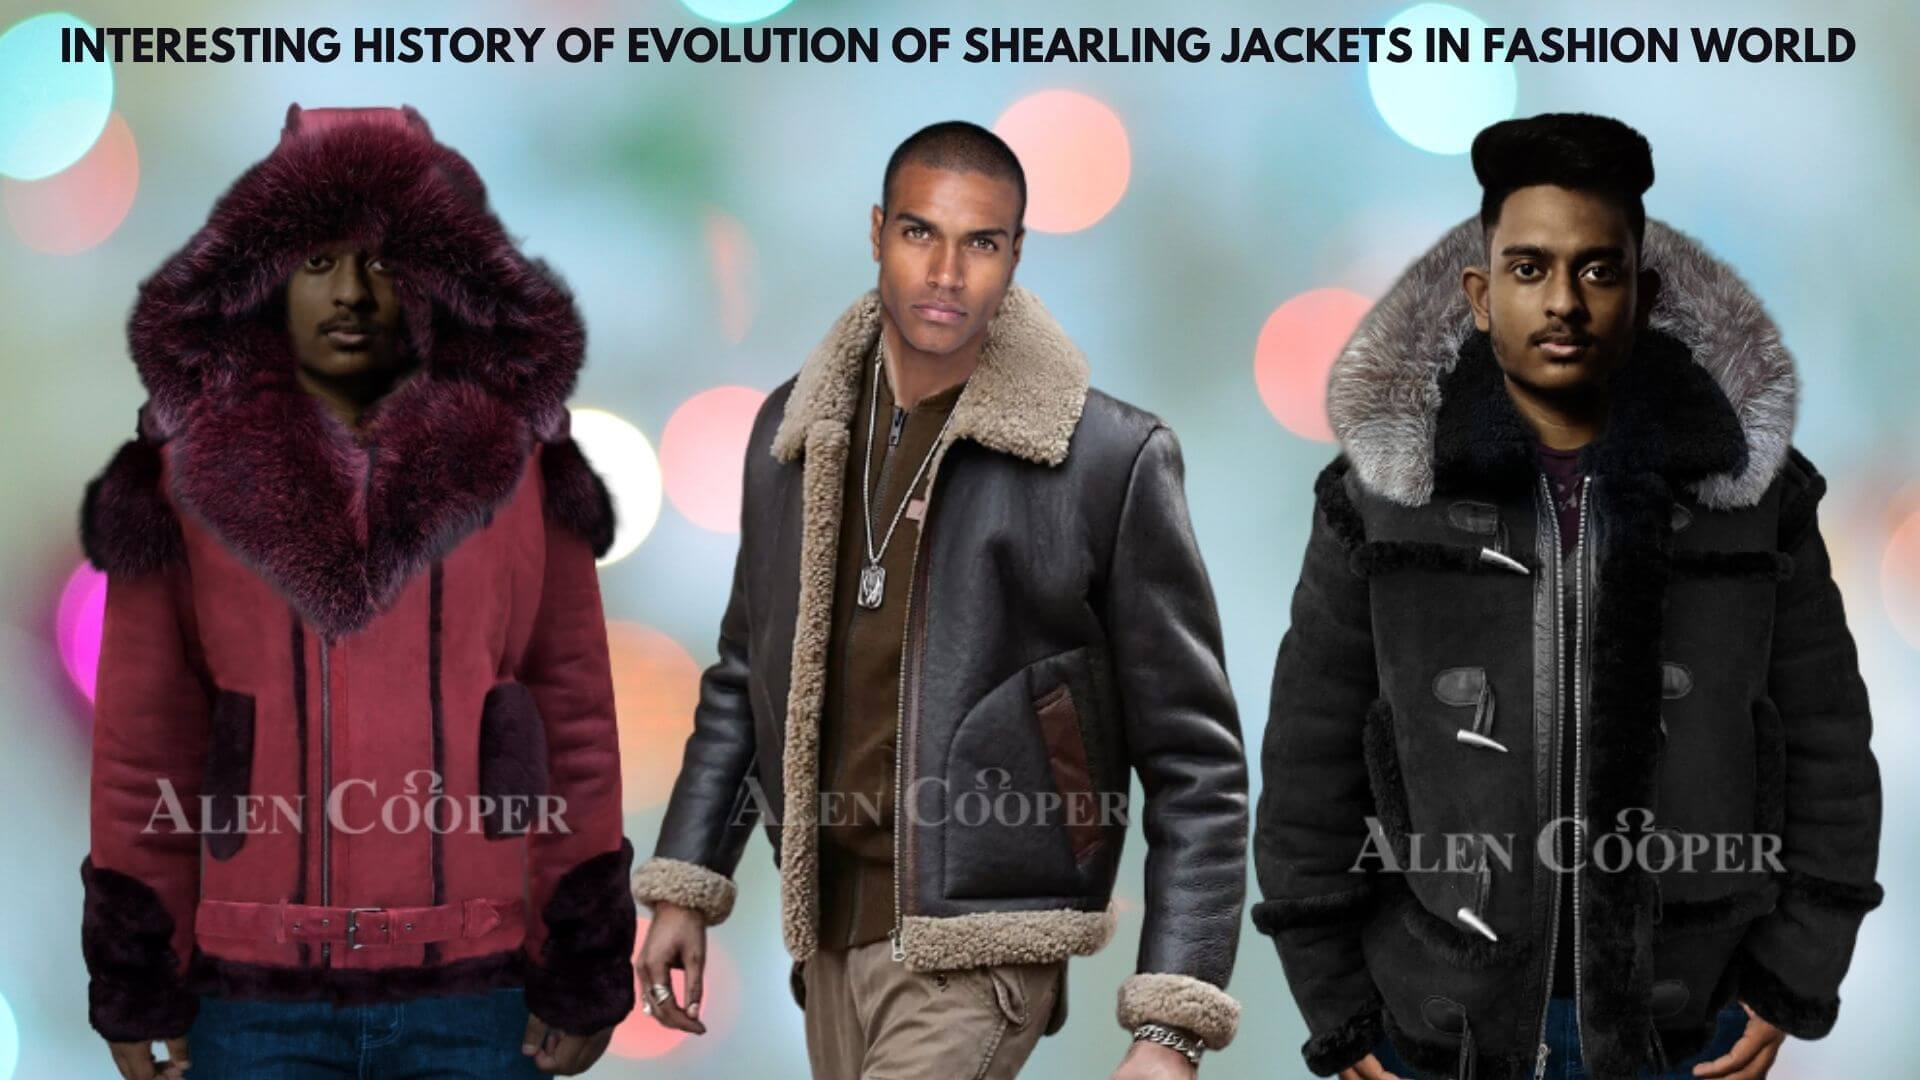 INTERESTING HISTORY OF EVOLUTION OF SHEARLING JACKETS IN FASHION WORLD